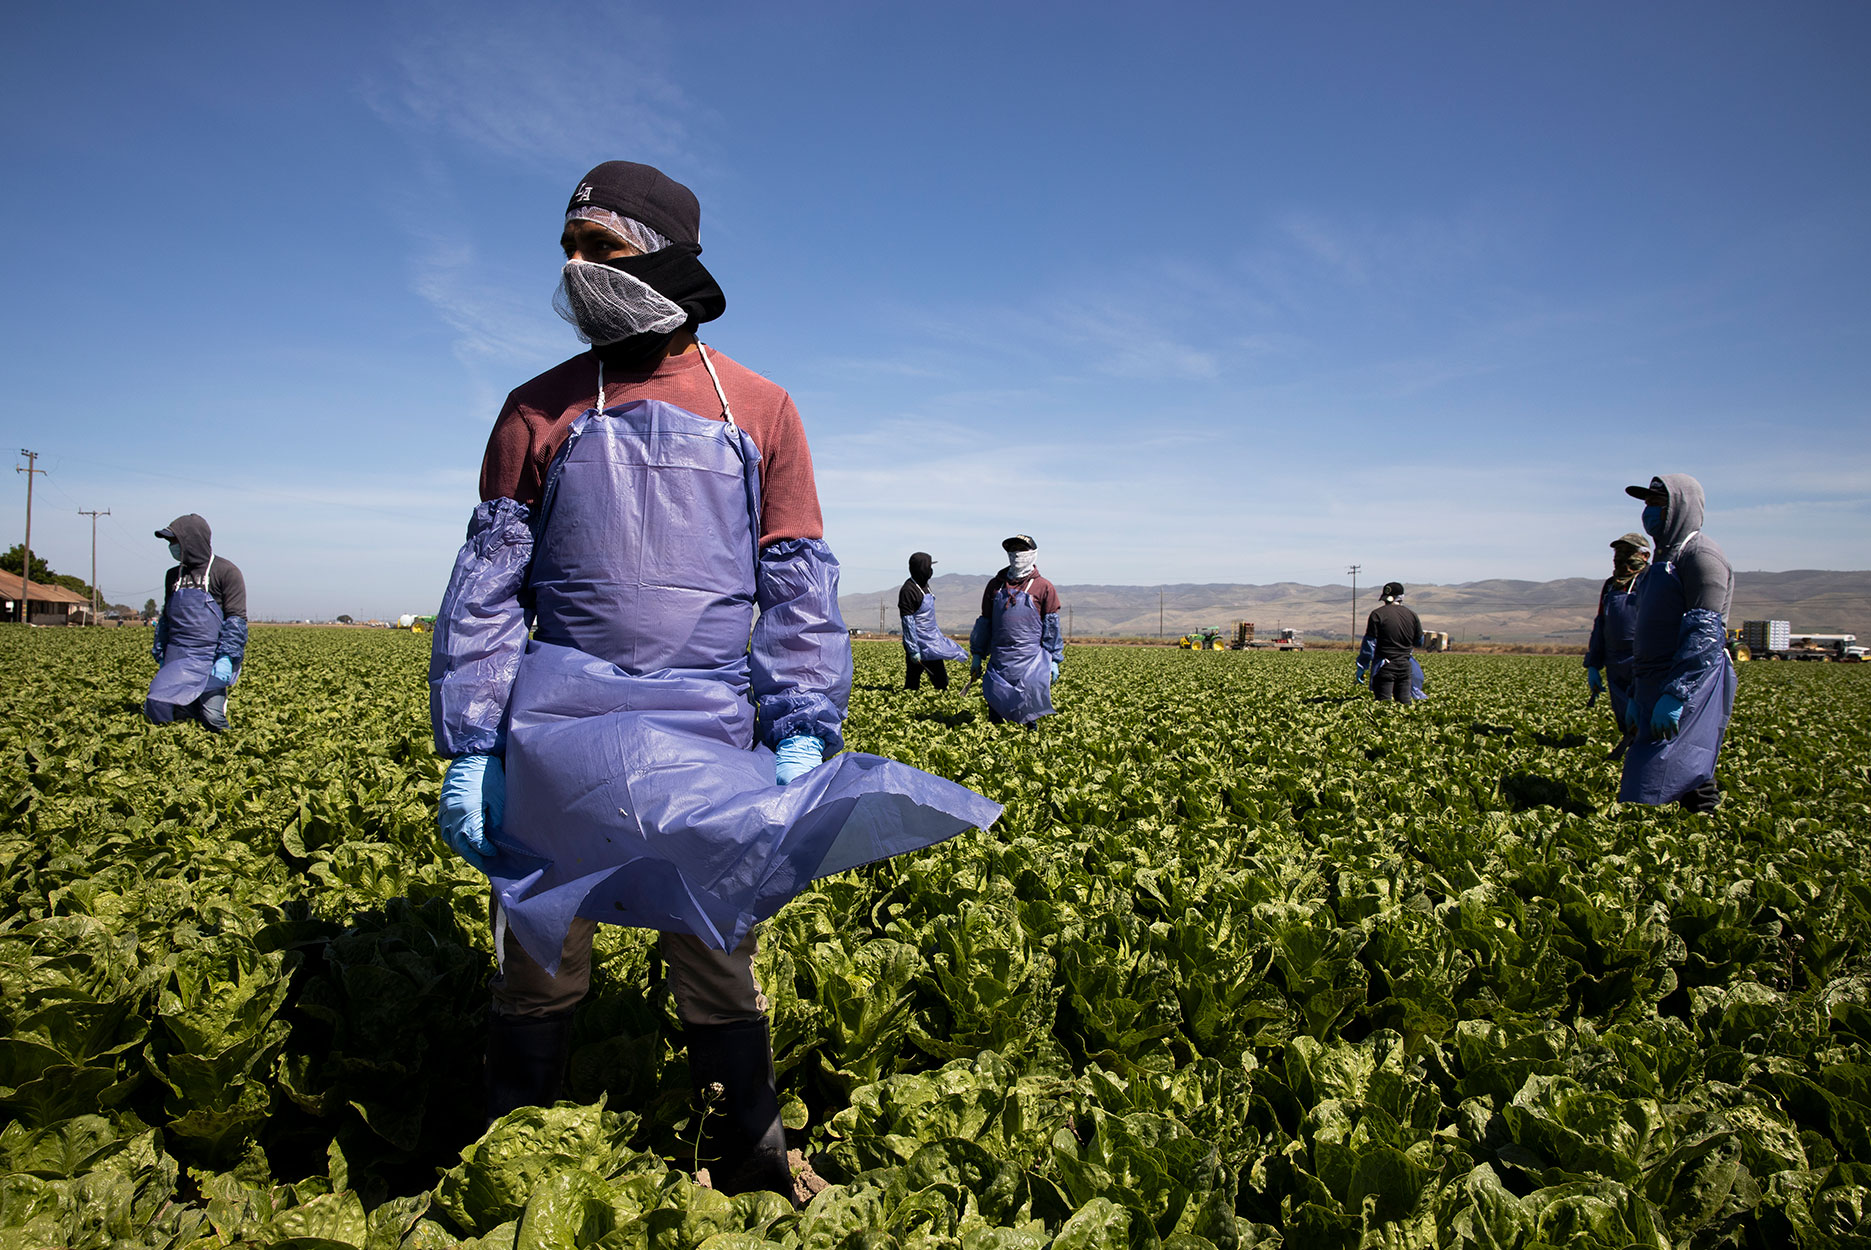 Farm laborers from Fresh Harvest working with an H-2A visa maintain a safe distance as a machine is moved on April 27, 2020 in Greenfield, California. Fresh Harvest is the one of the largest employers of people using the H-2A temporary agricultural worker visa for labor, harvesting and staffing in the United States. The company is implementing strict health and safety initiatives for their workers during the coronavirus pandemic and are trying a number of new techniques to enhance safety in the field as well as in work